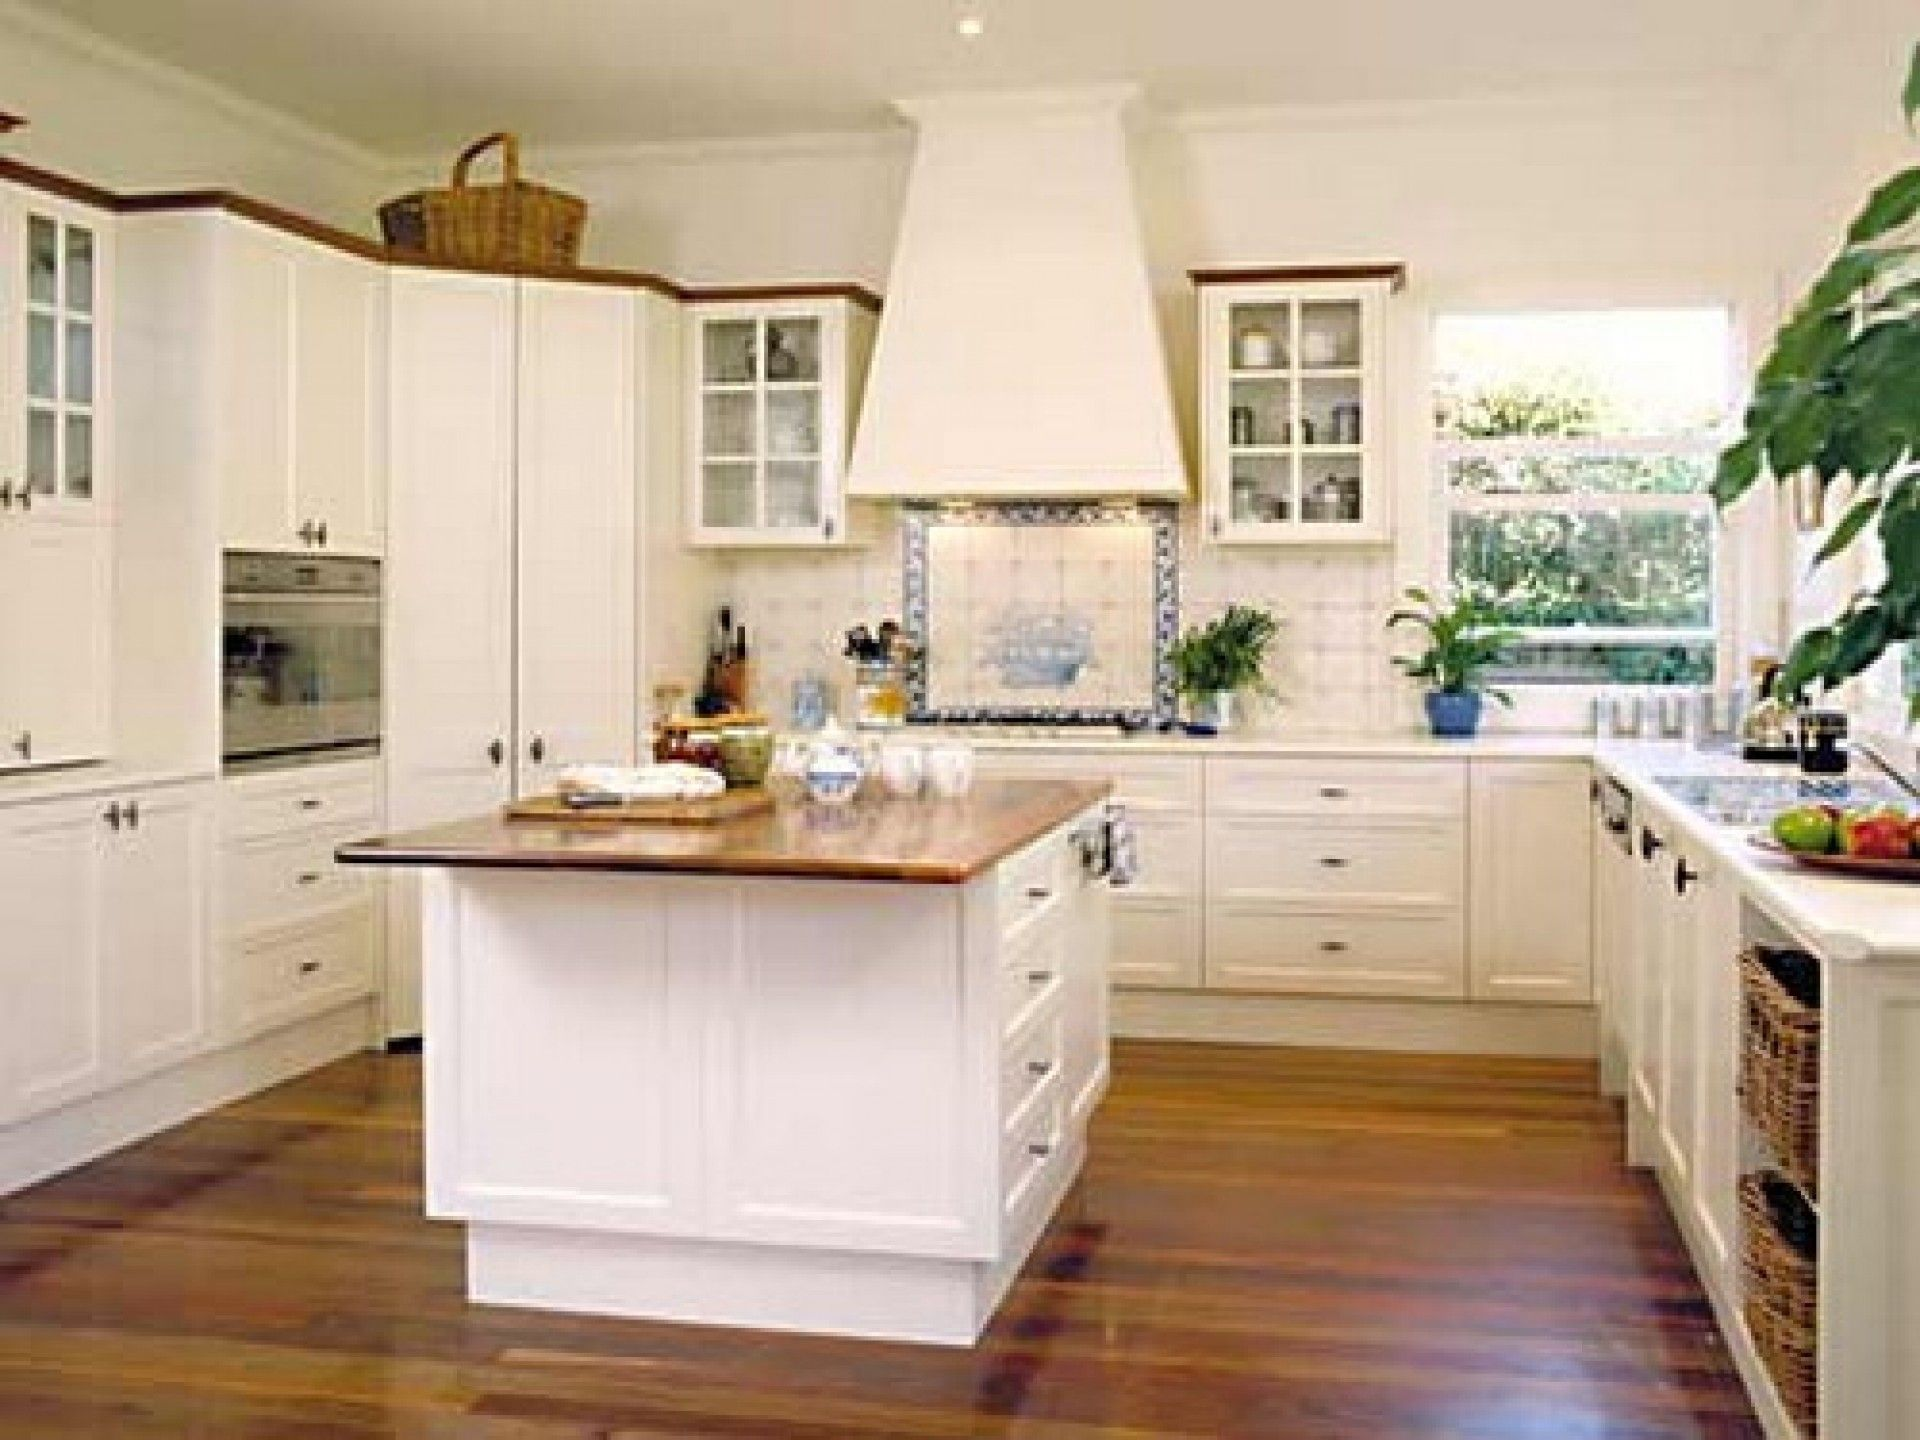 Stunning French Provincial Kitchen Design Ideas With Square Shape White Kitchen Island And White